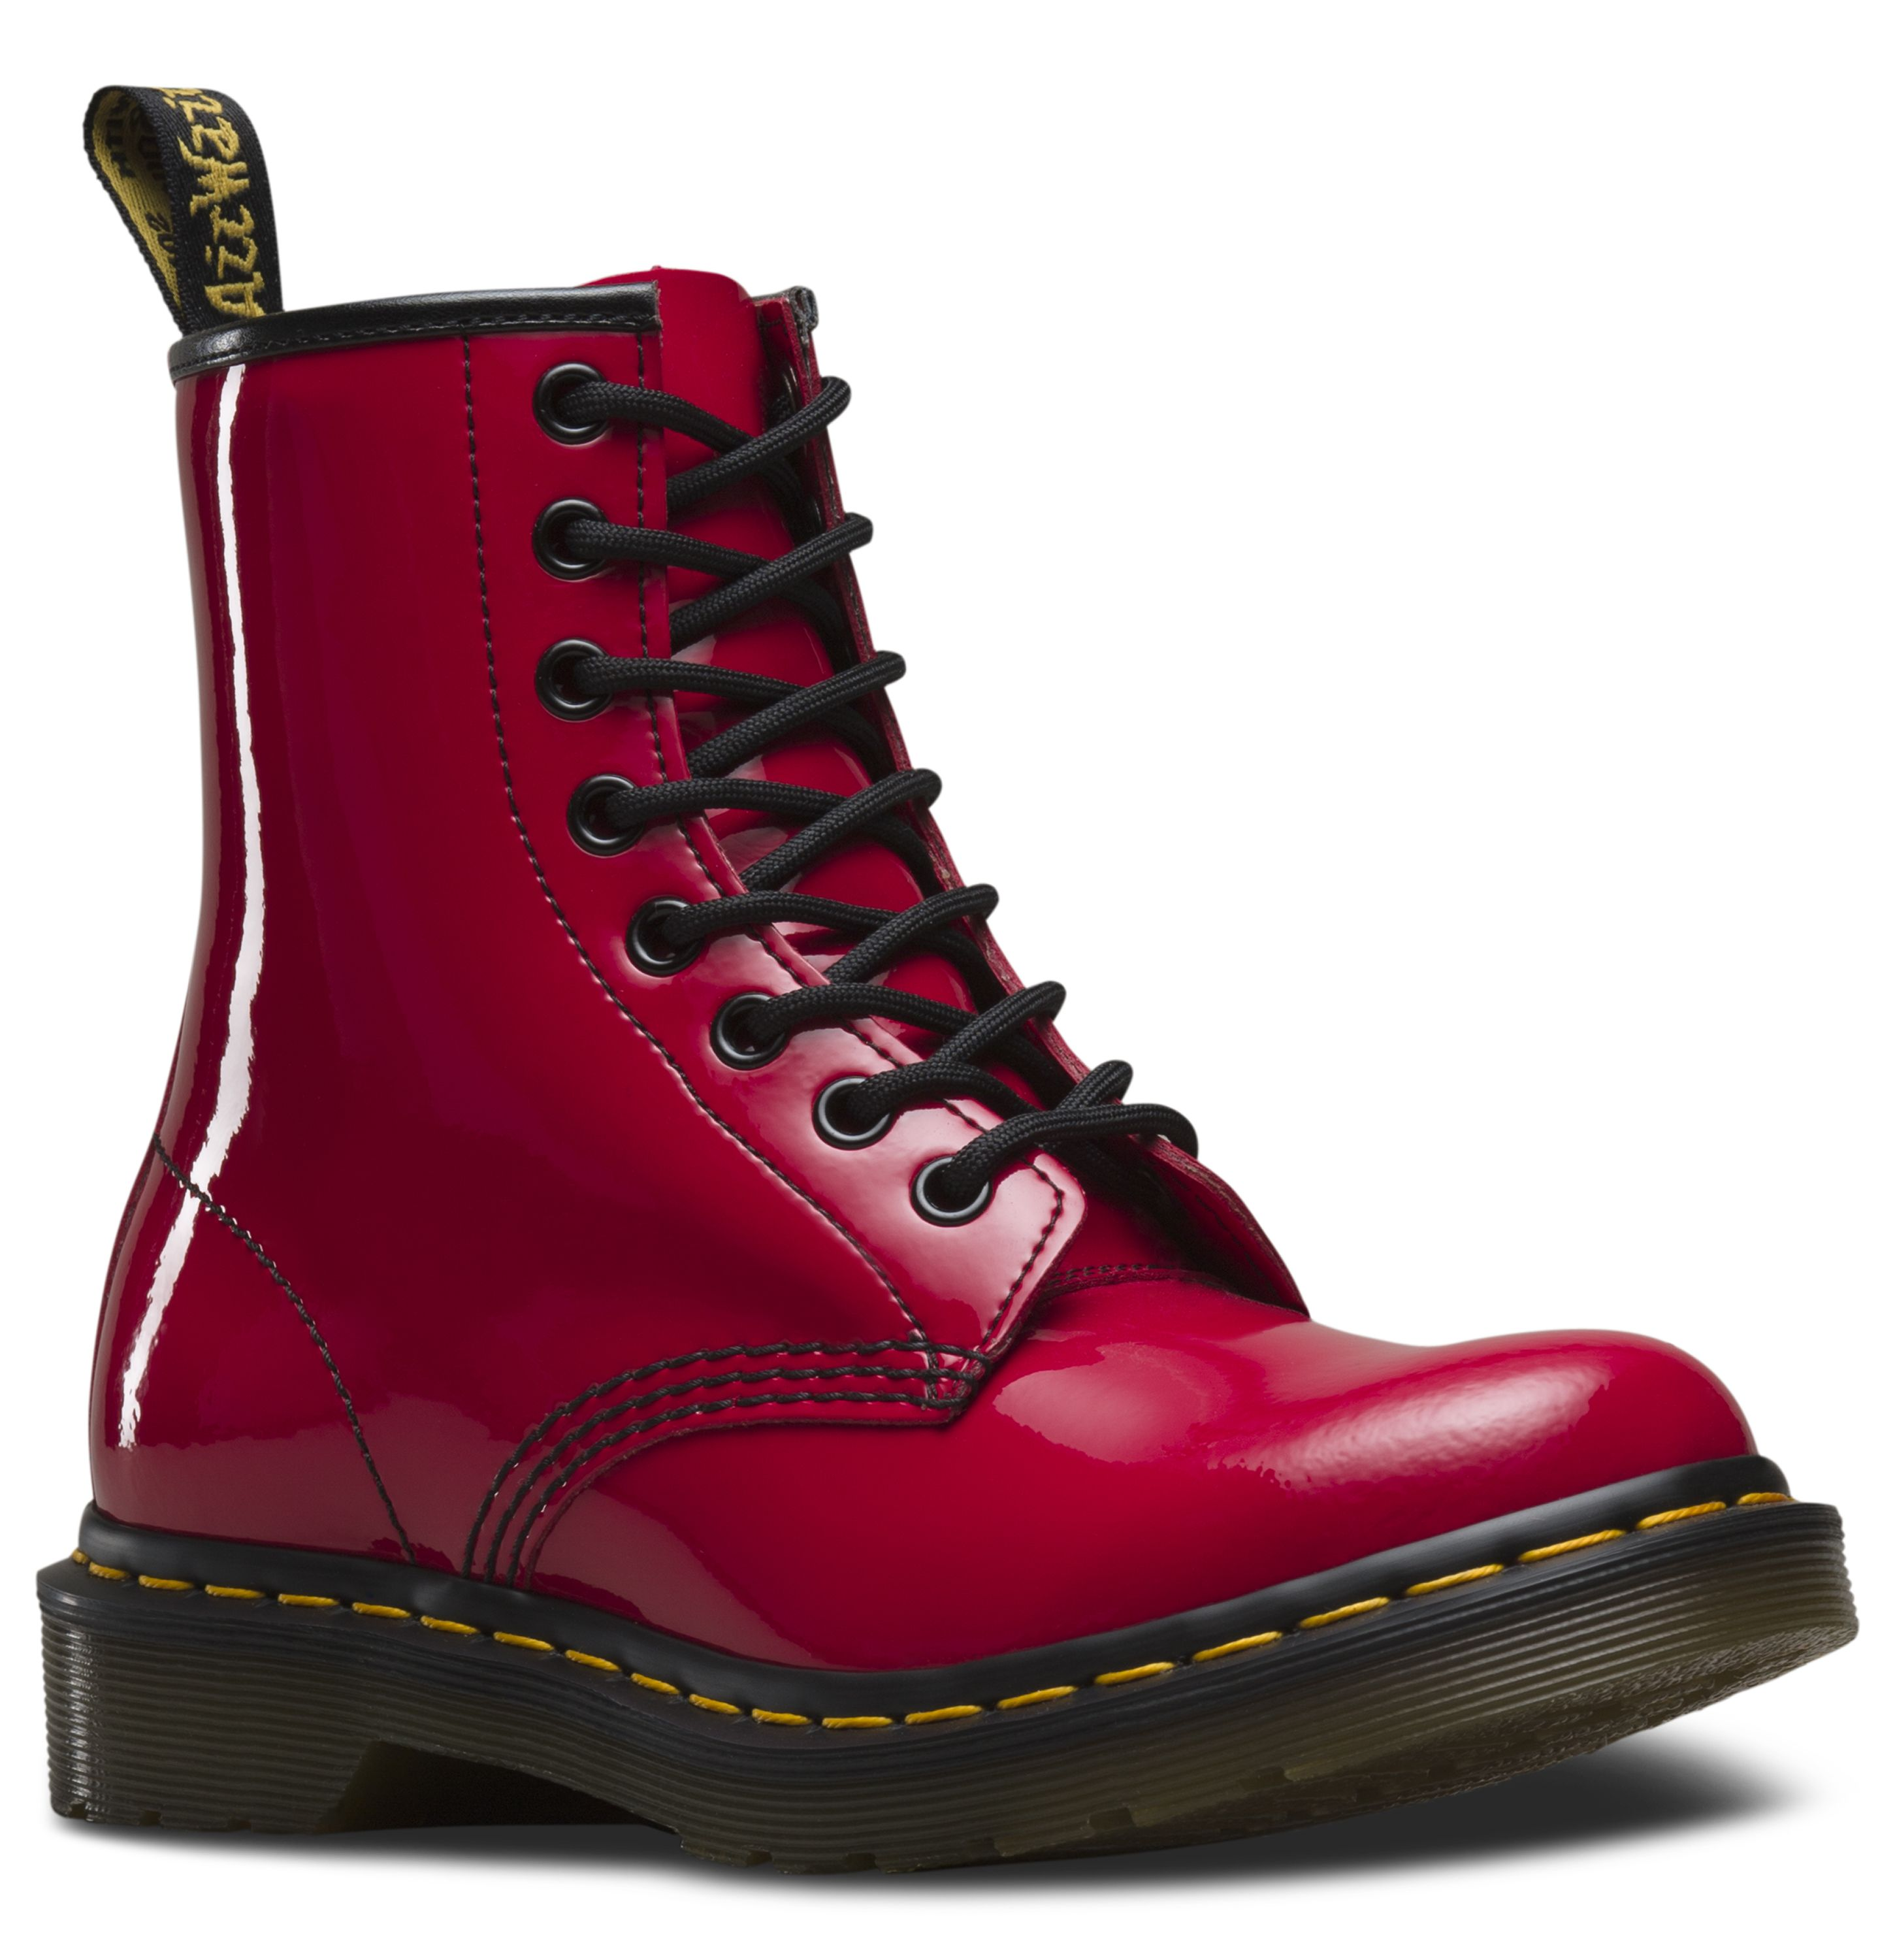 Dr martens 1460 women's patent leather lace up boots in 2020